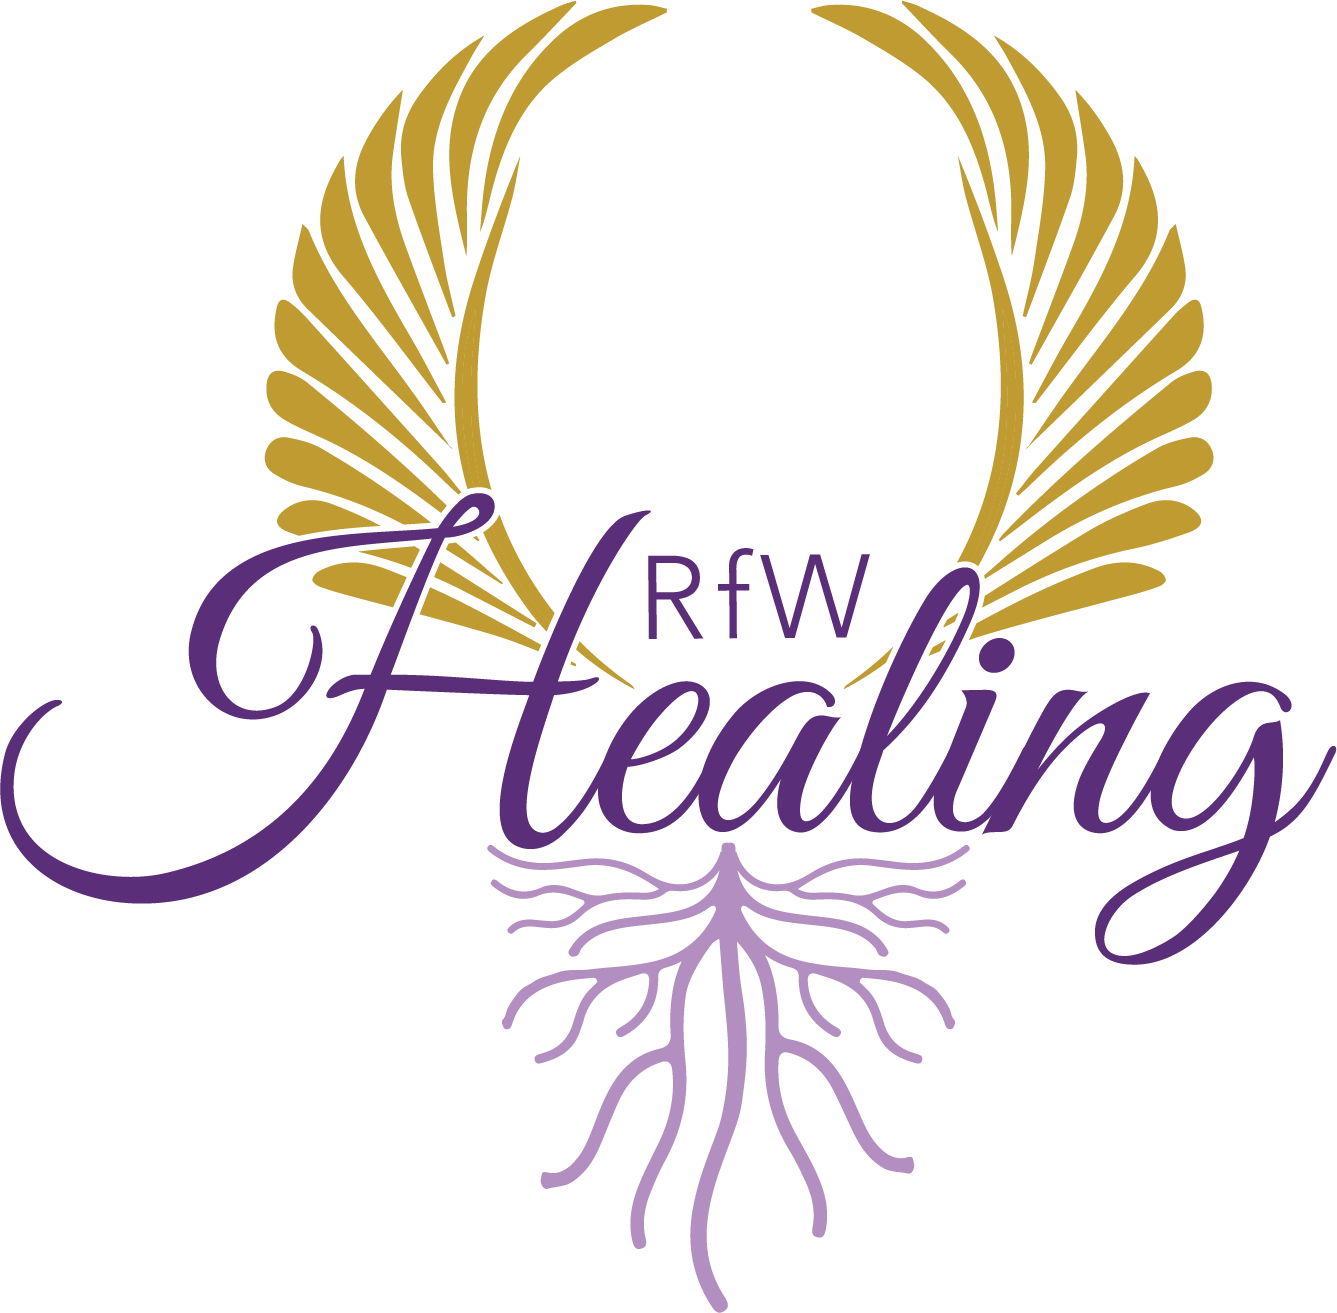 Roots for Wings Healing